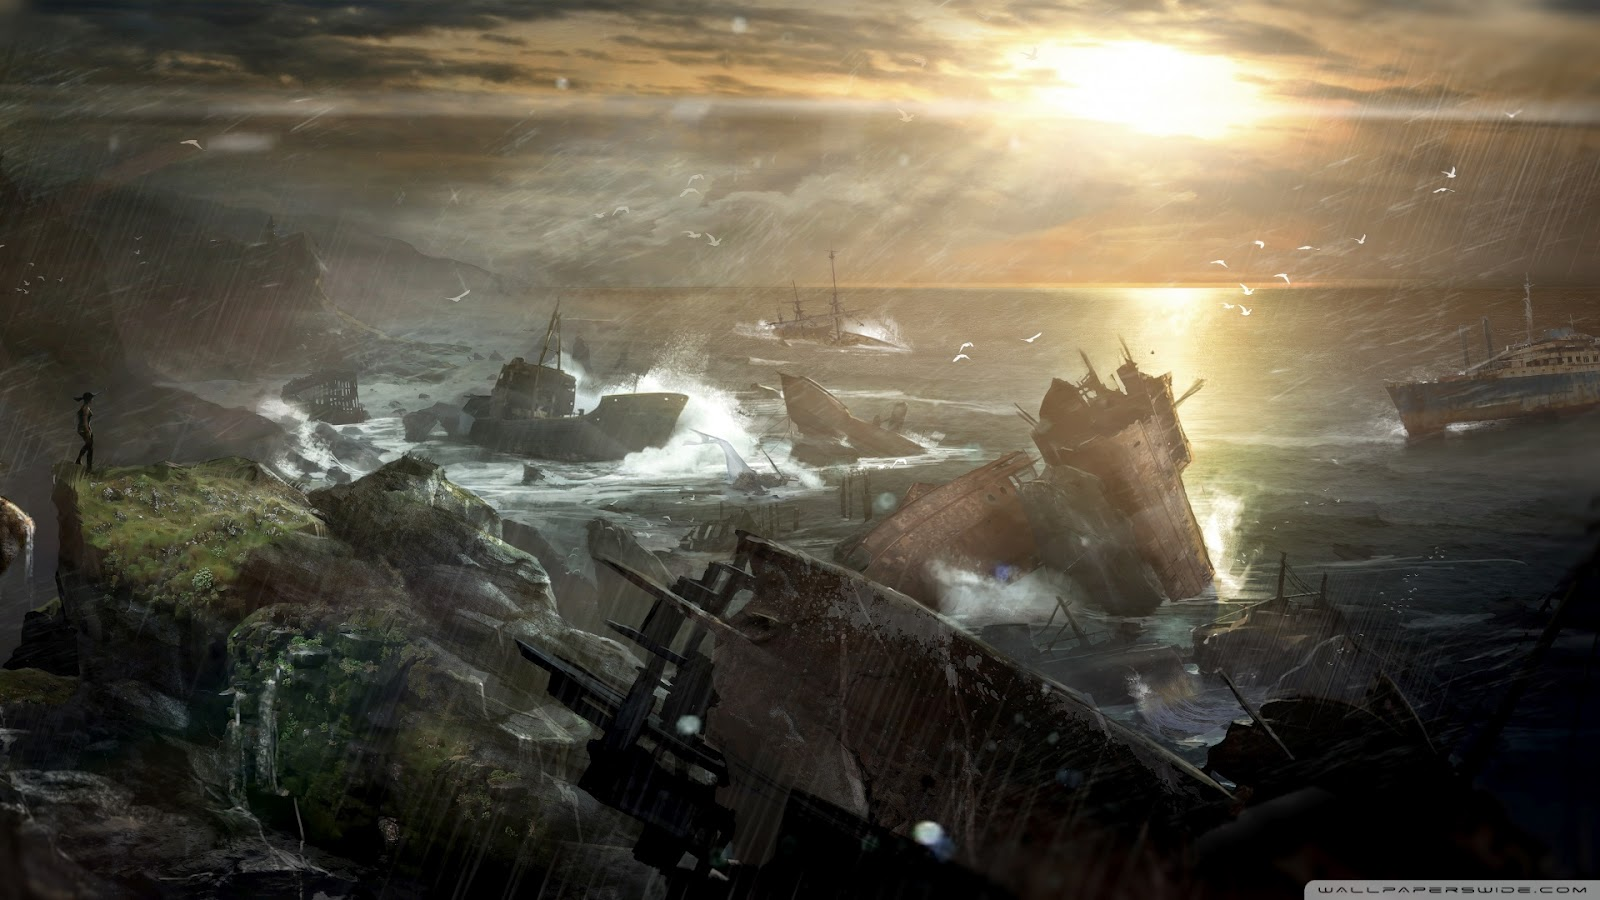 http://1.bp.blogspot.com/--pEzmFmqCfc/T614XuHPo4I/AAAAAAAACTo/LktnR9jDBv8/s1600/tomb_raider_2012_video_game___shipwreck_vista-wallpaper-1920x1080.jpg